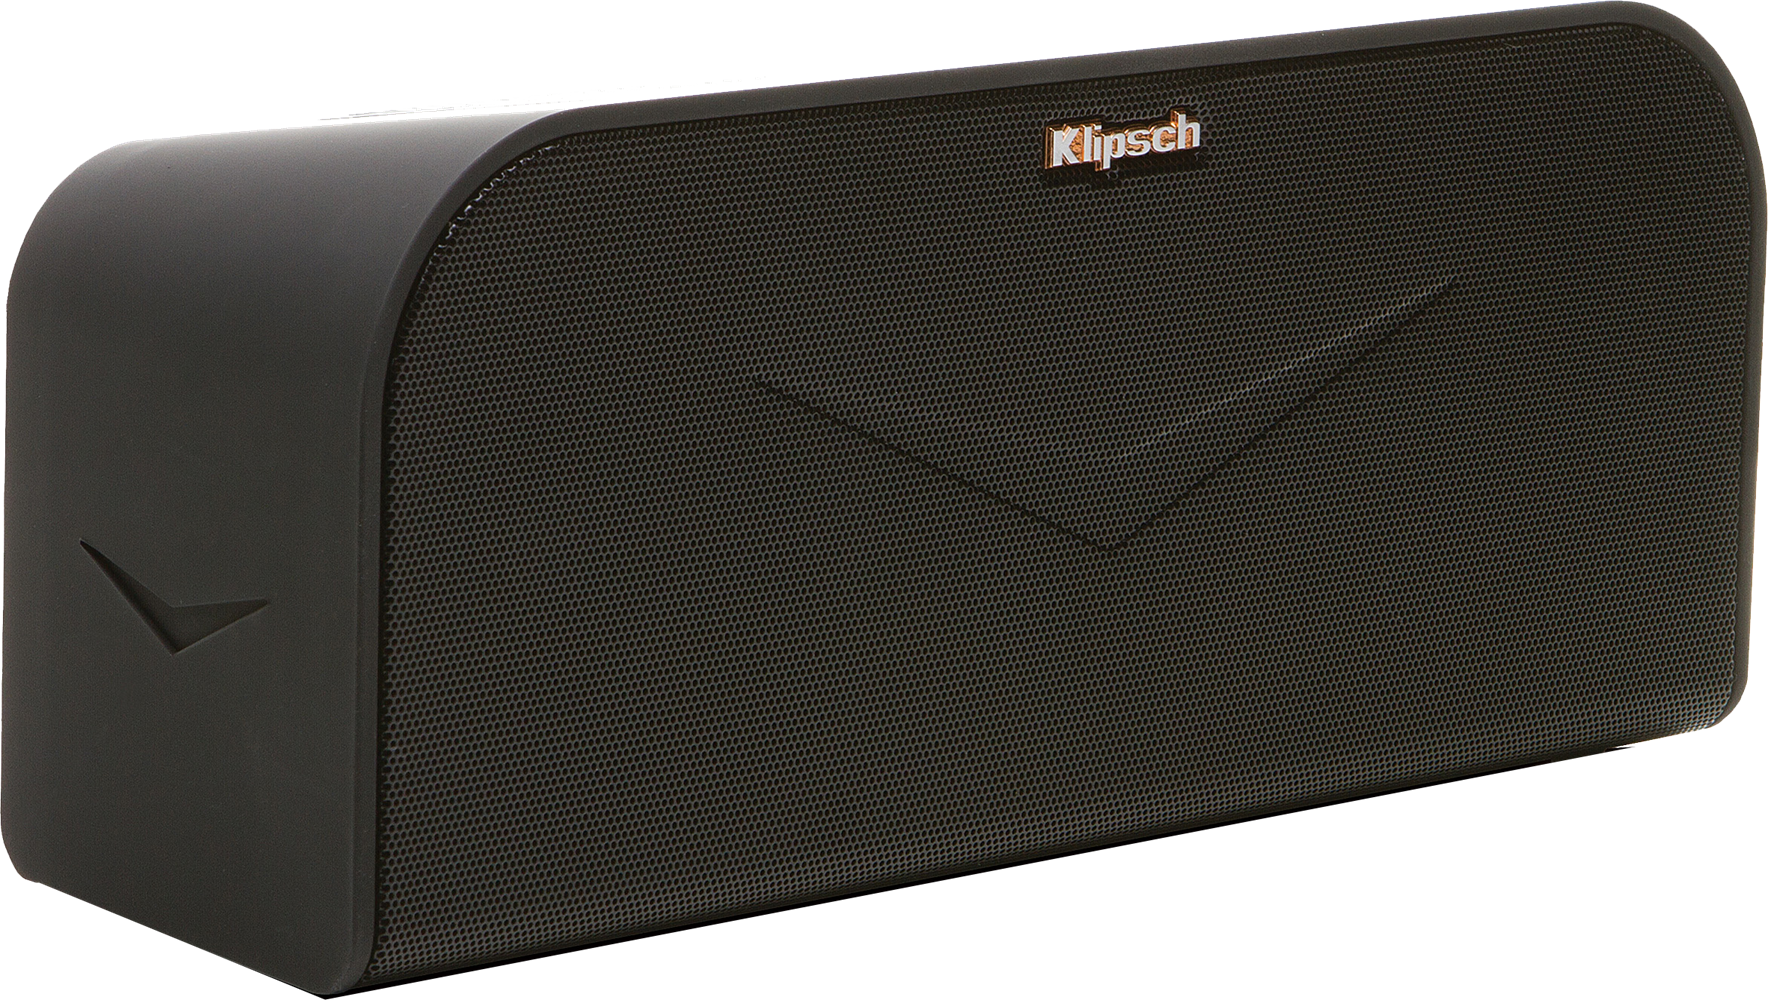 klipsch kmc 1 portable wireless music system tbooth. Black Bedroom Furniture Sets. Home Design Ideas